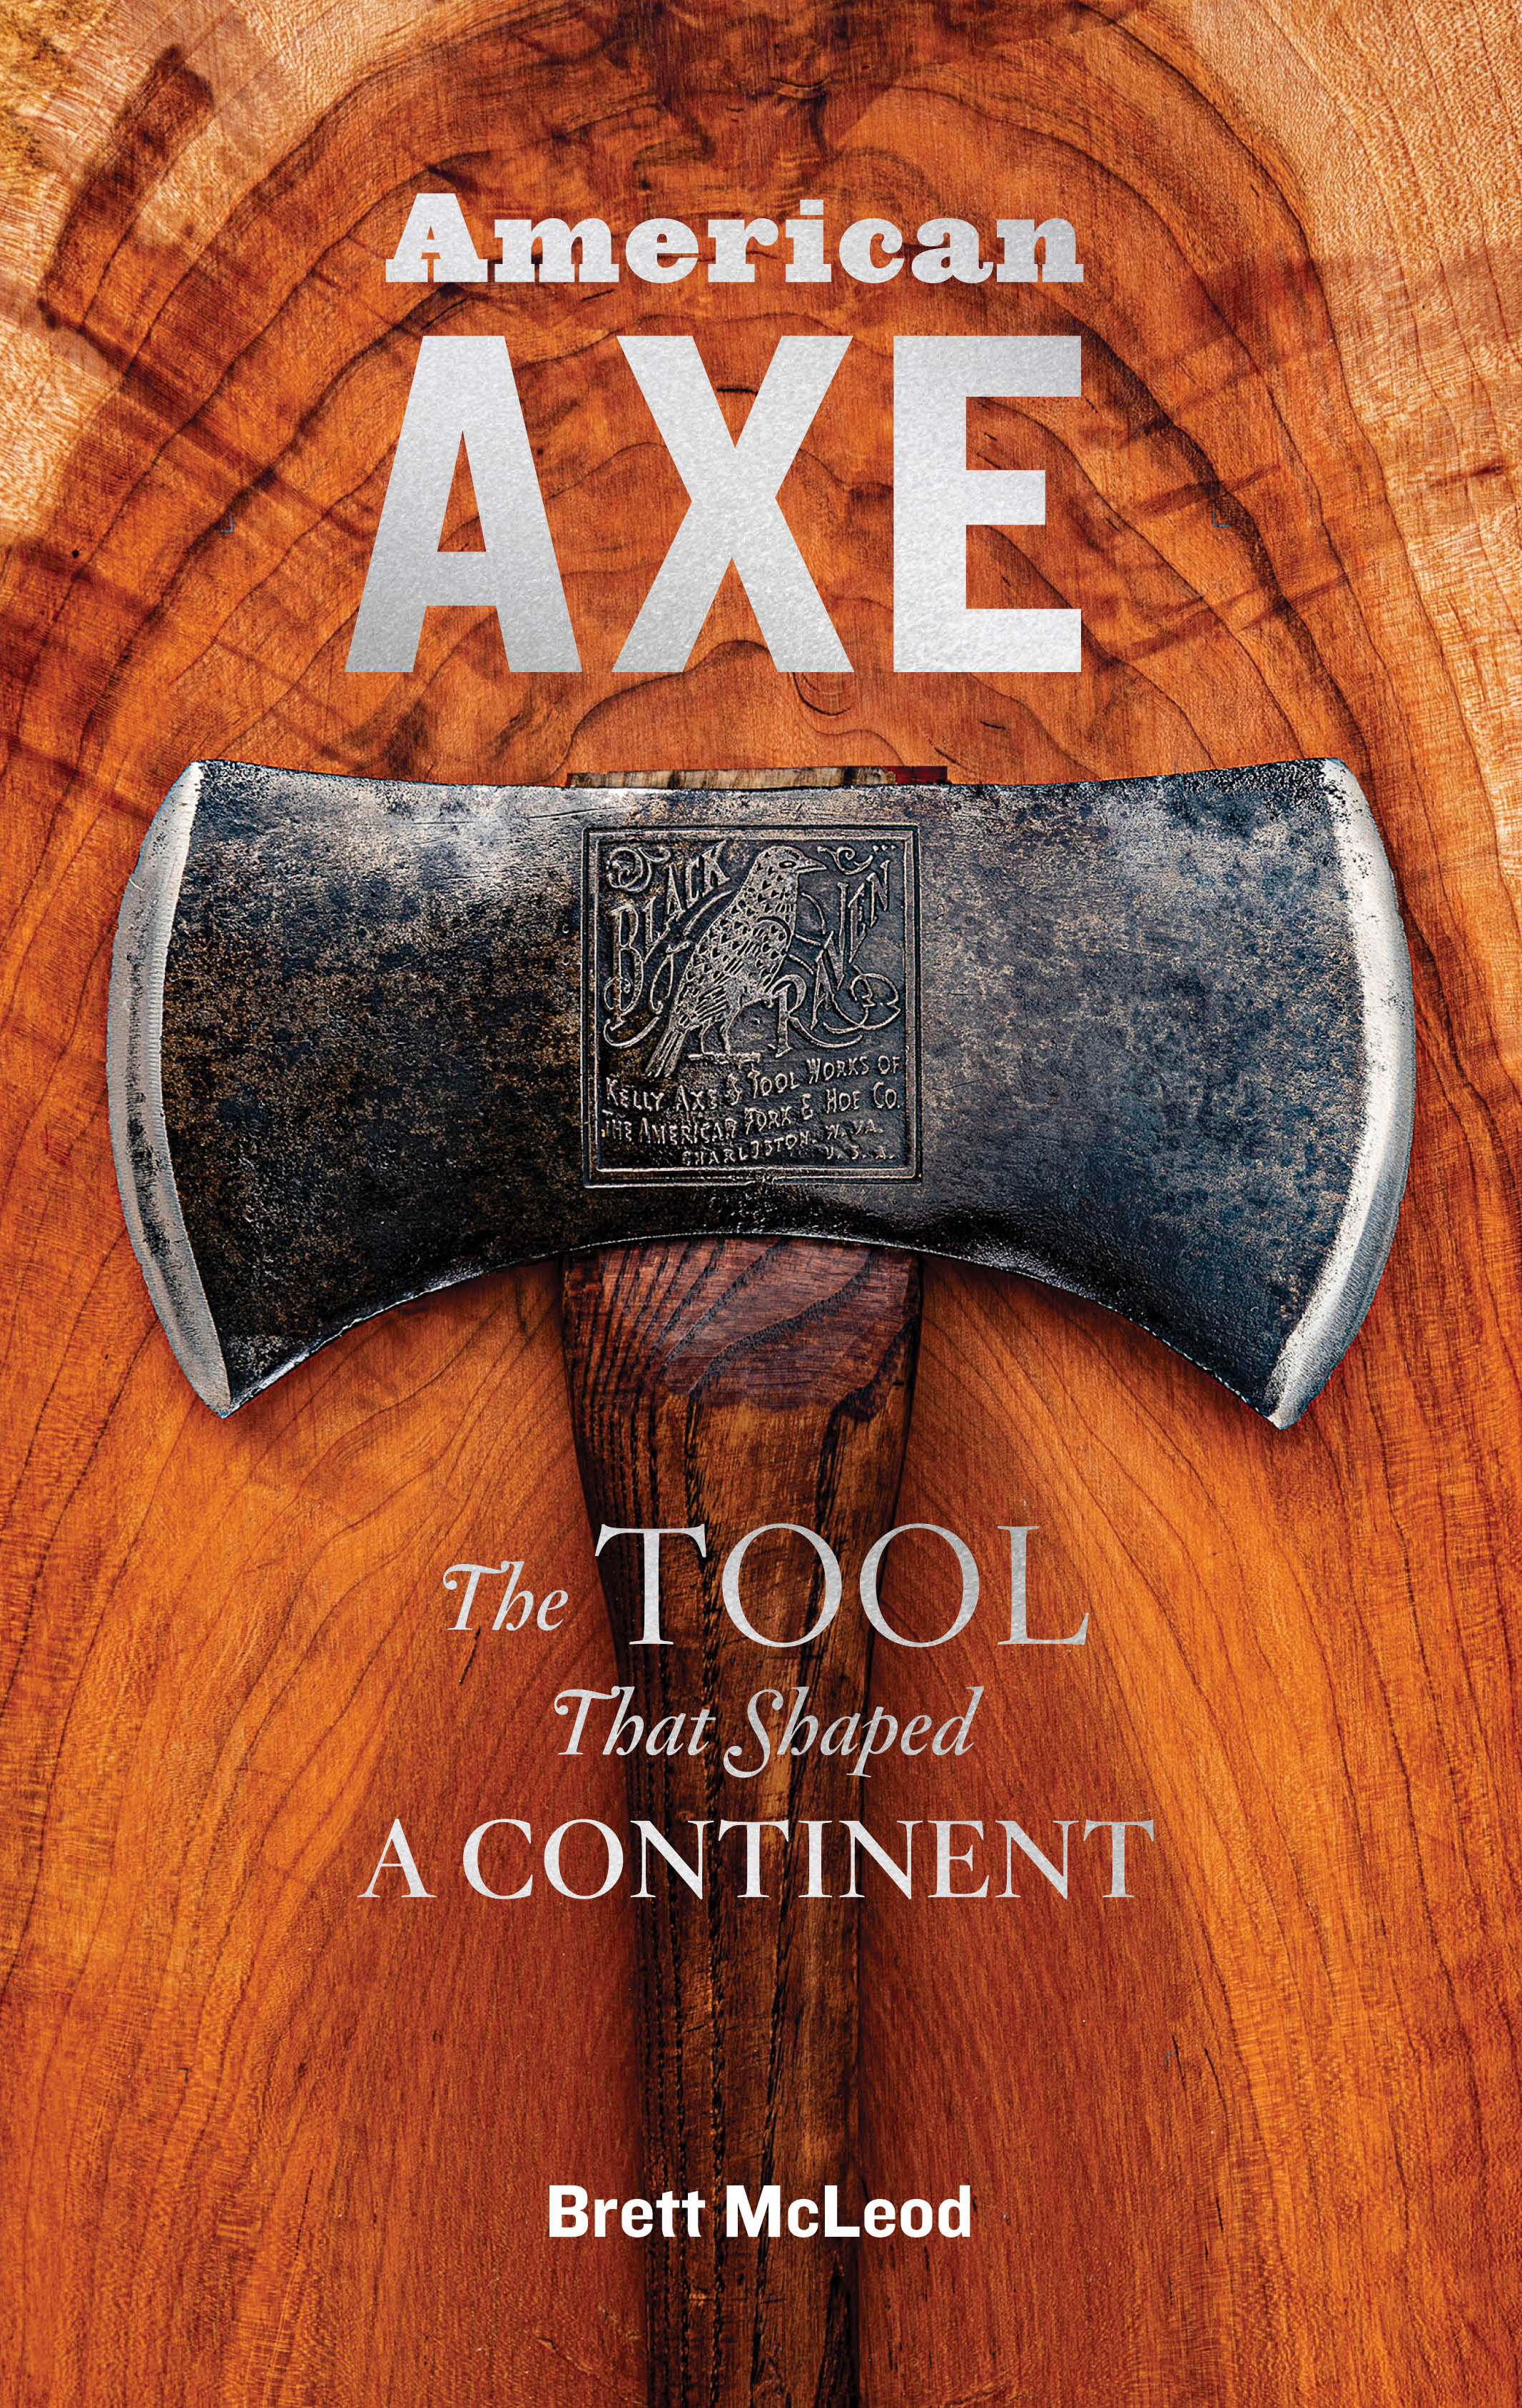 American Axe The Tool That Shaped a Continent - Brett McLeod